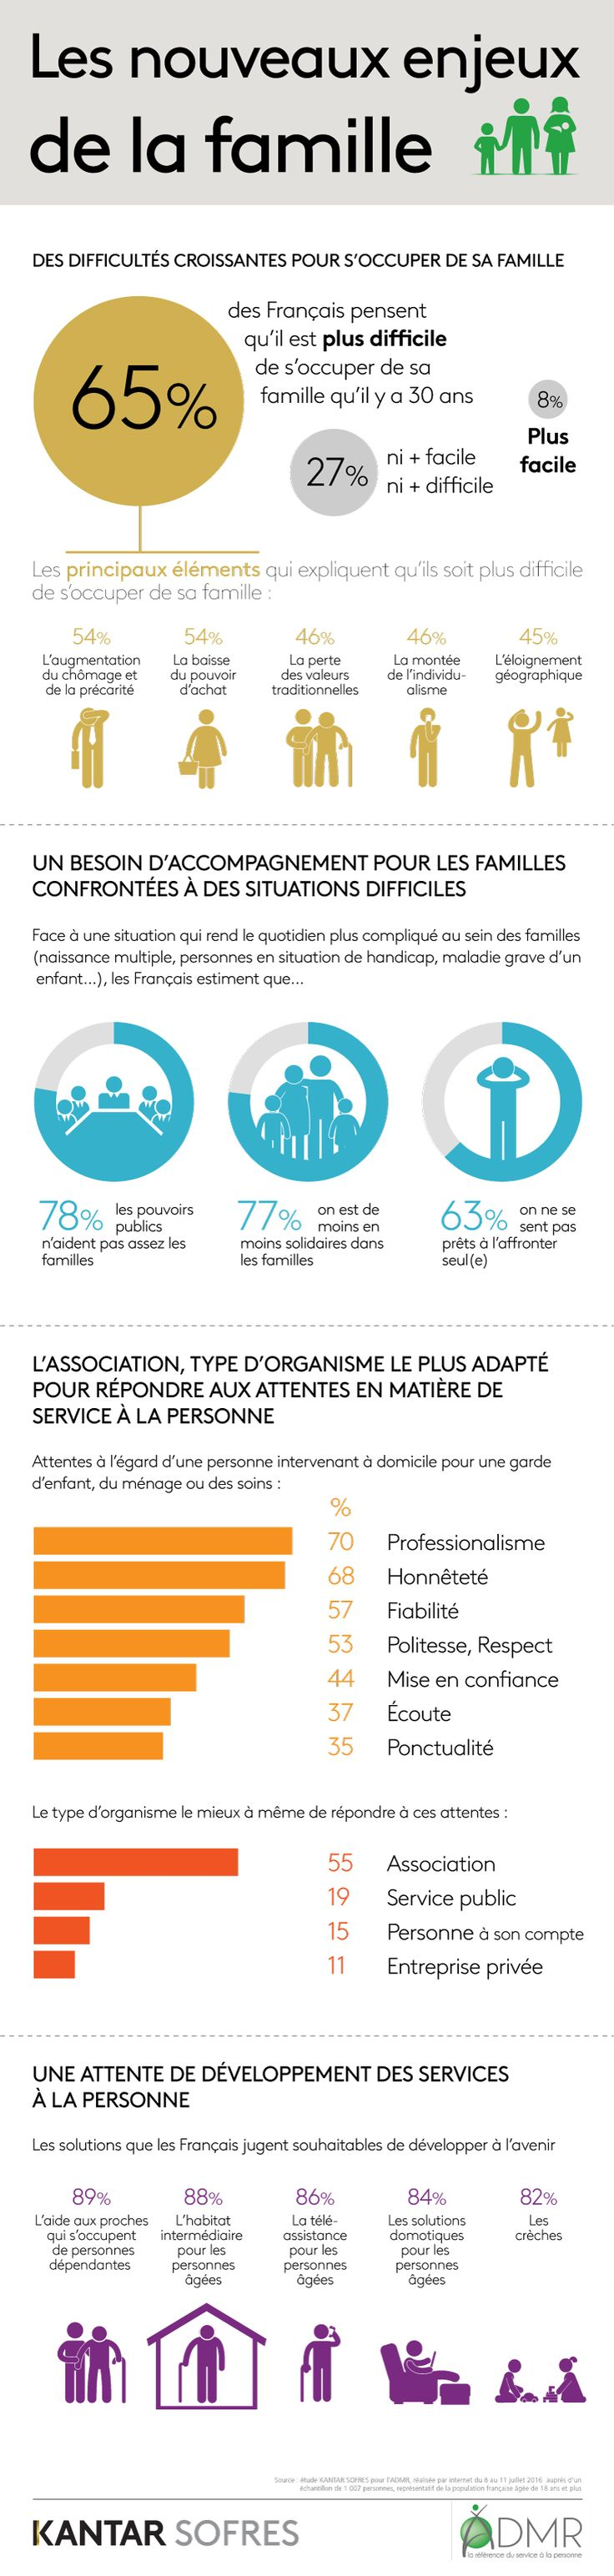 Family matters infographic by Kantar TNS